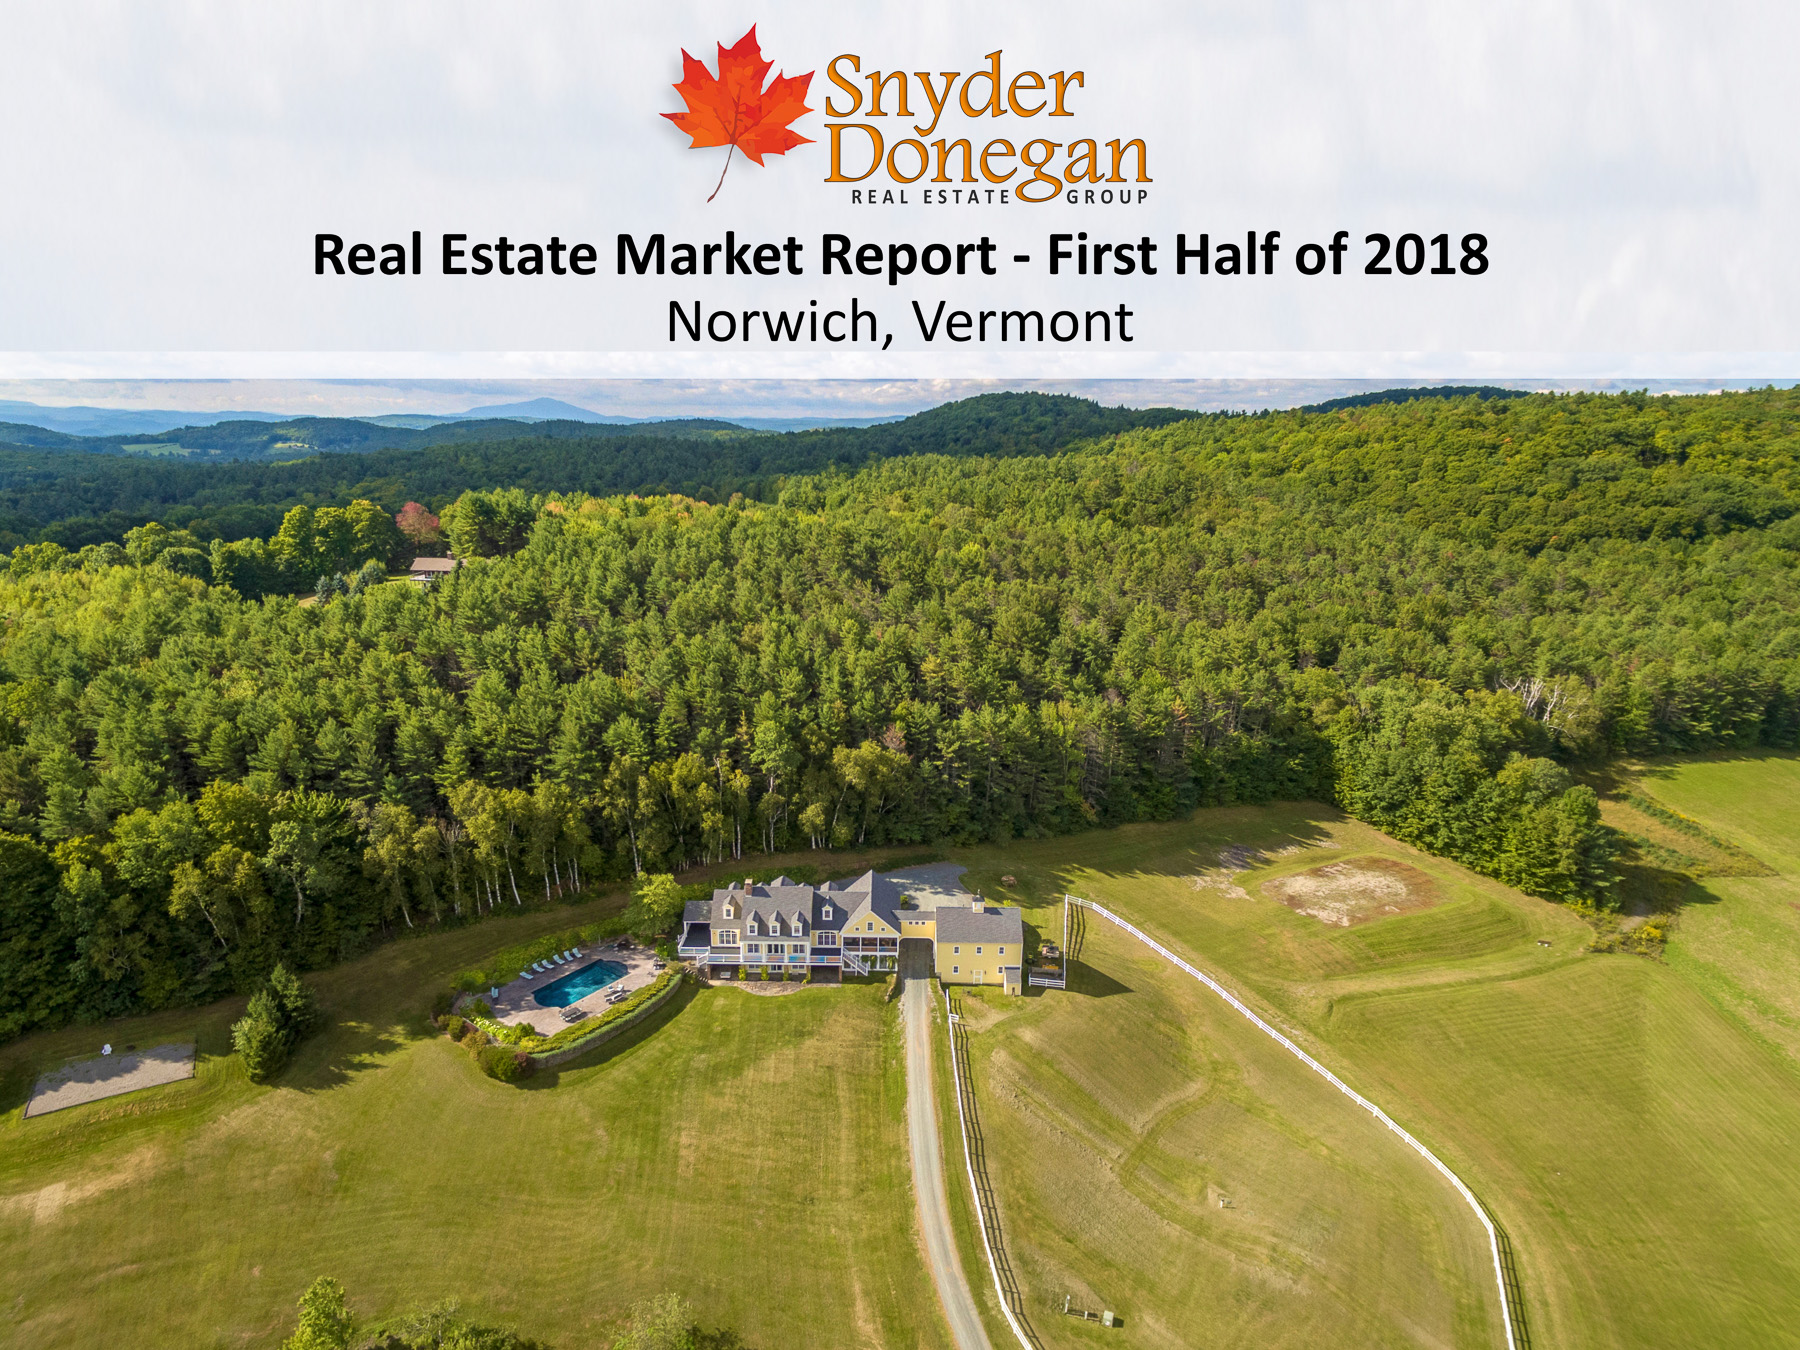 Norwich VT Real Estate Market Report - First Half of 2018